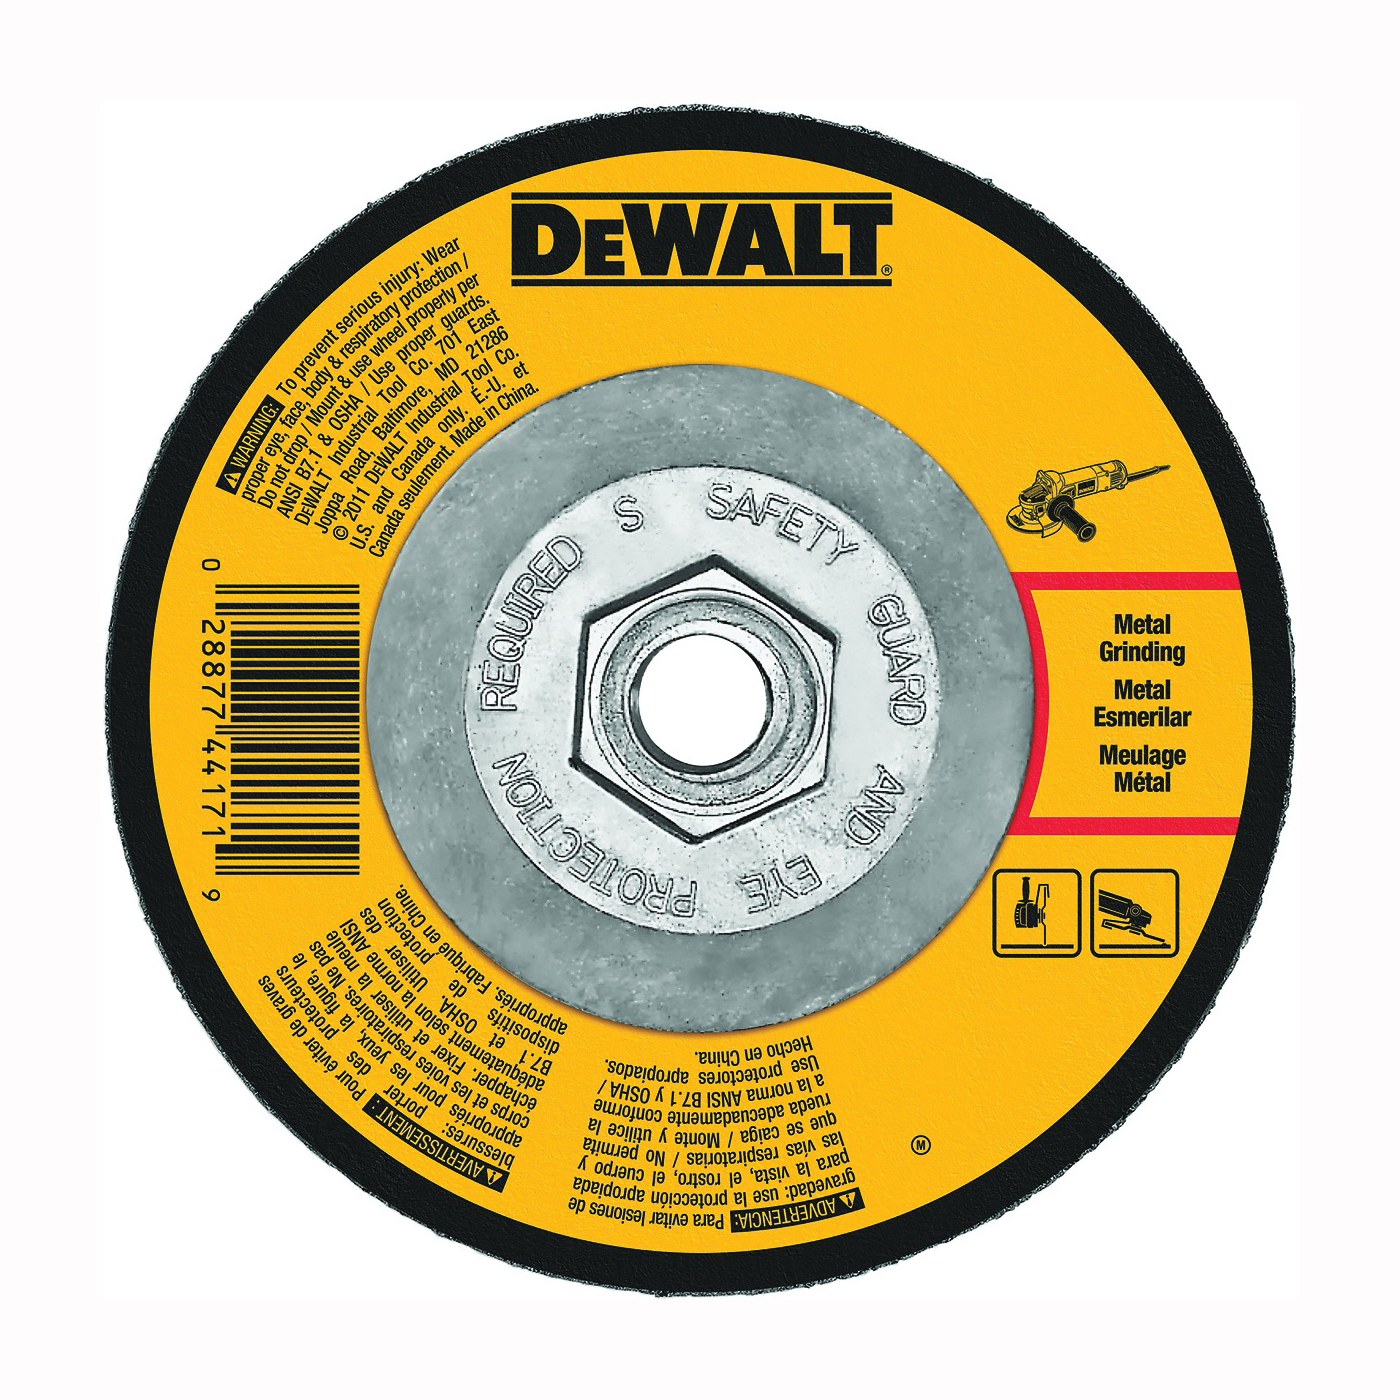 Picture of DeWALT DW4548 Grinding Wheel, 7 in Dia, 1/4 in Thick, 5/8-11 in Arbor, 24 Grit, Aluminum Oxide Abrasive